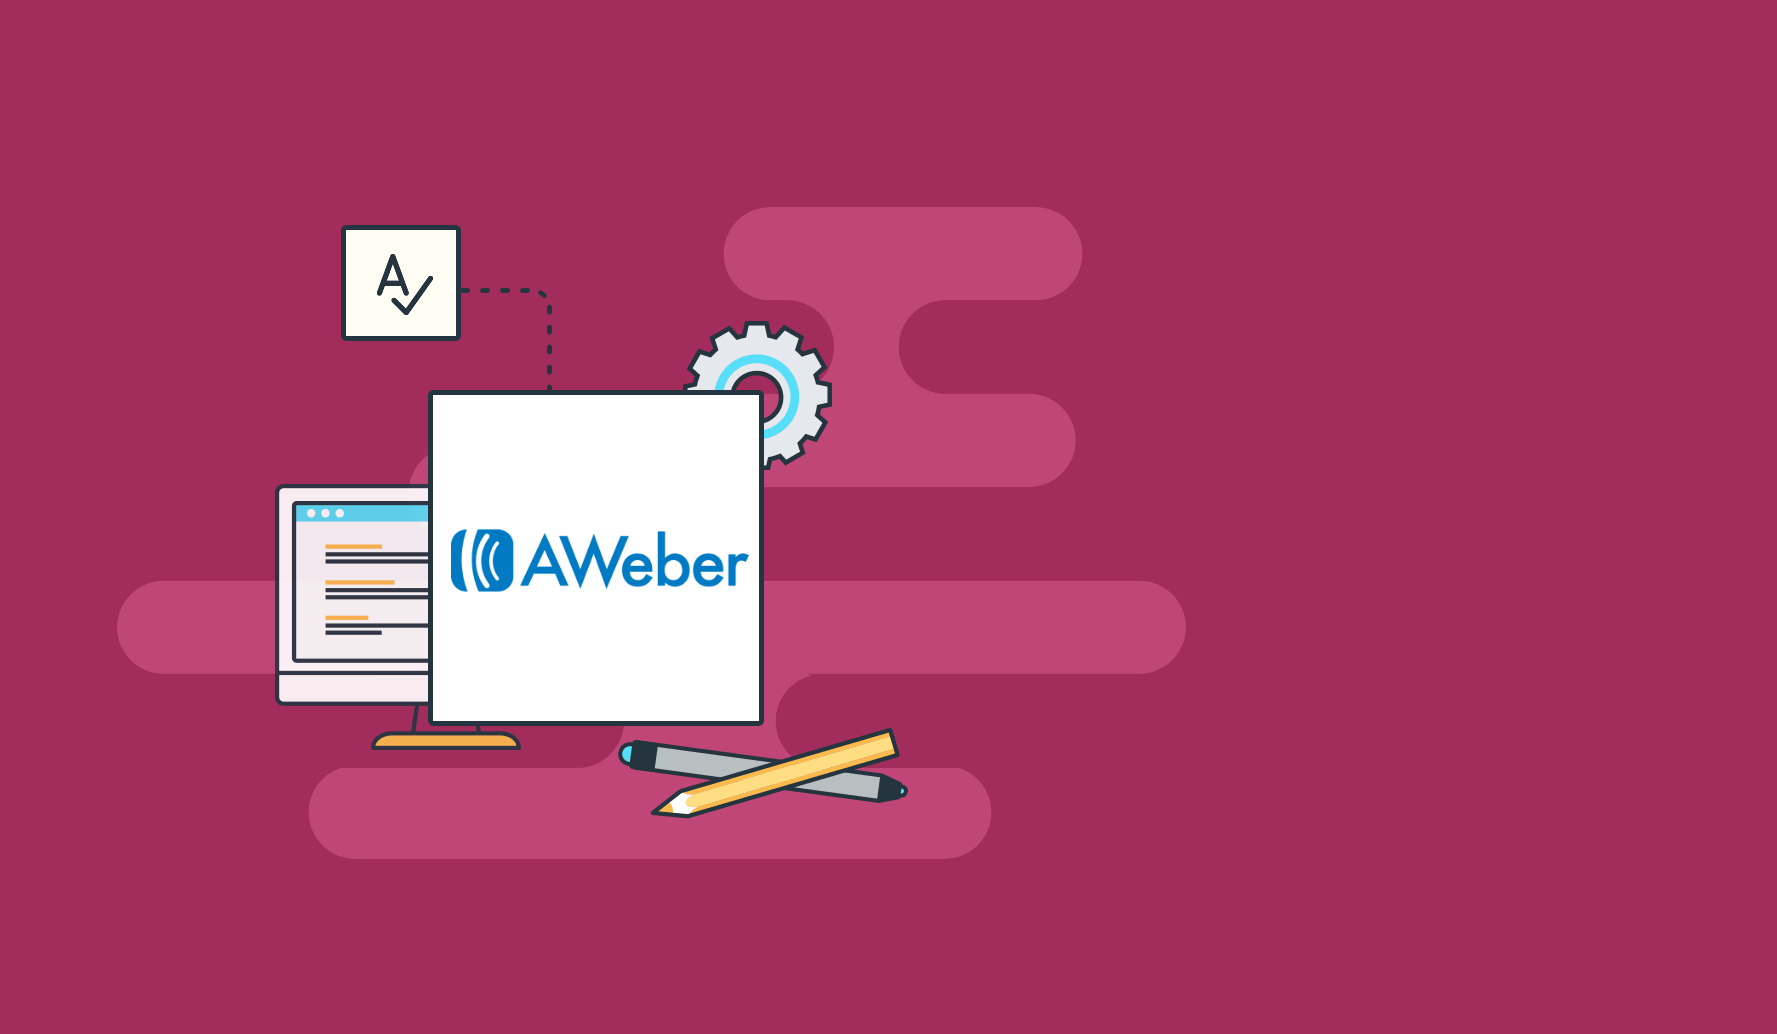 Email Marketing Aweber Online Voucher Code Printable 30